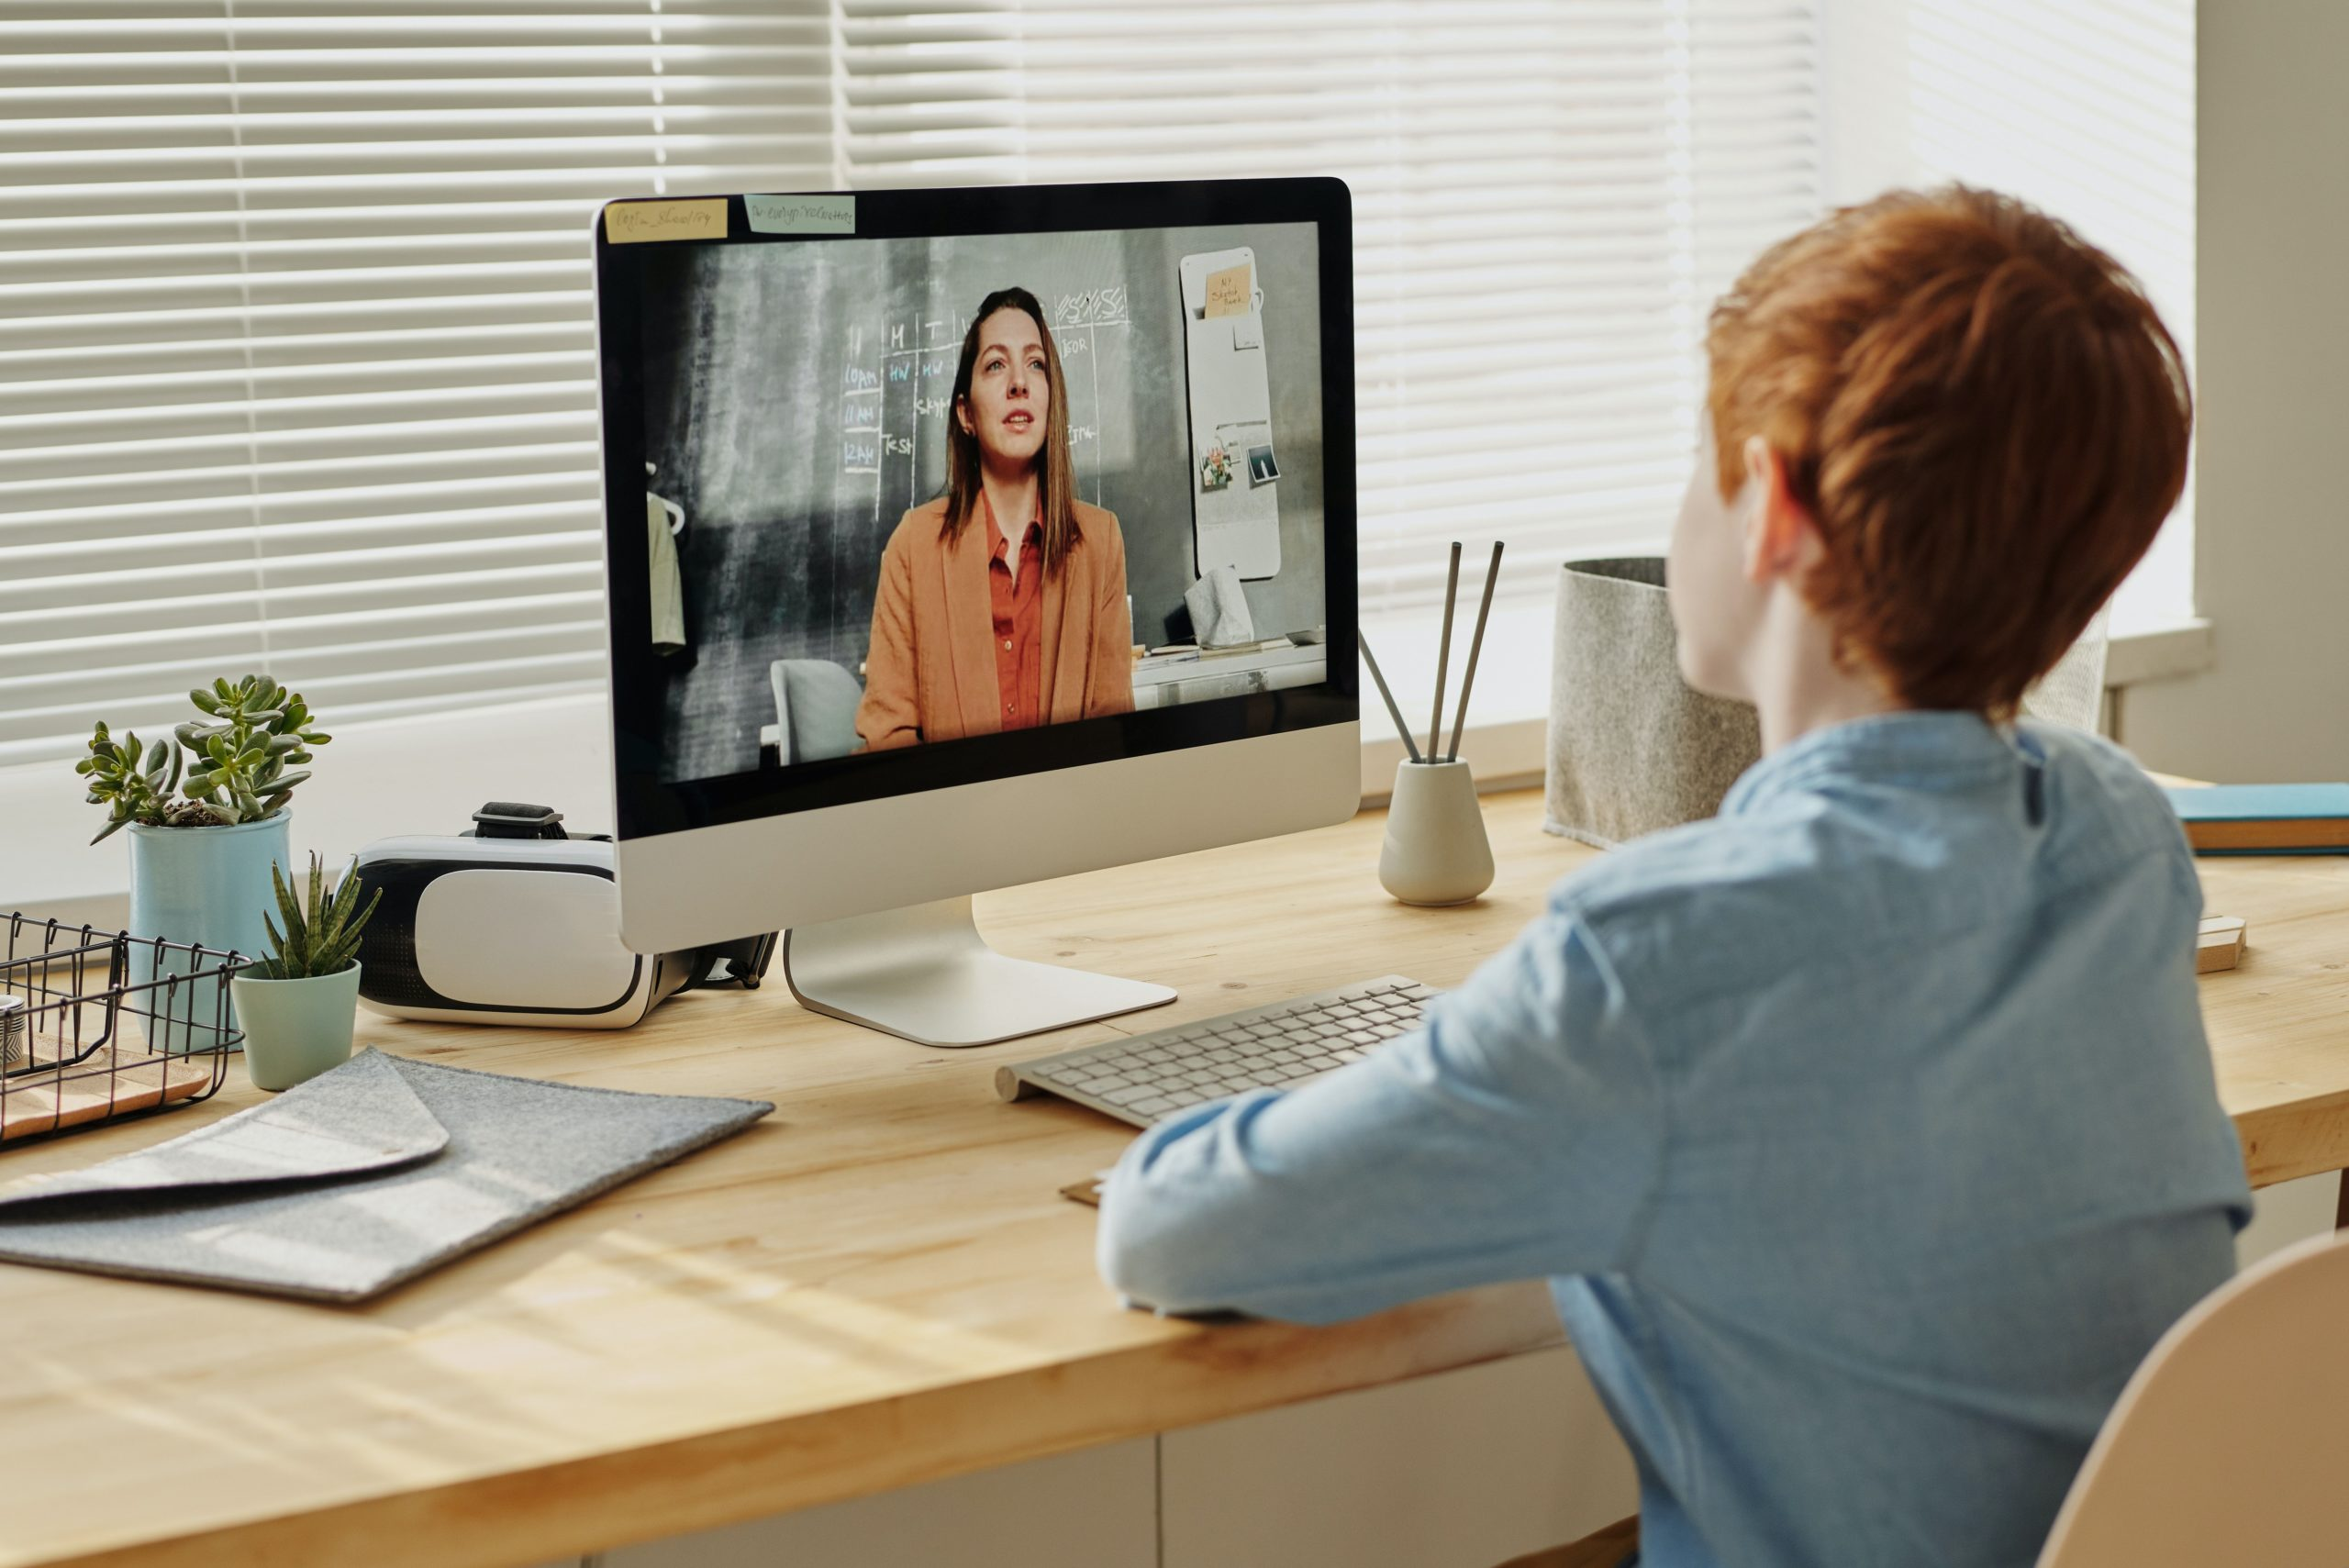 Remote working and distance learning